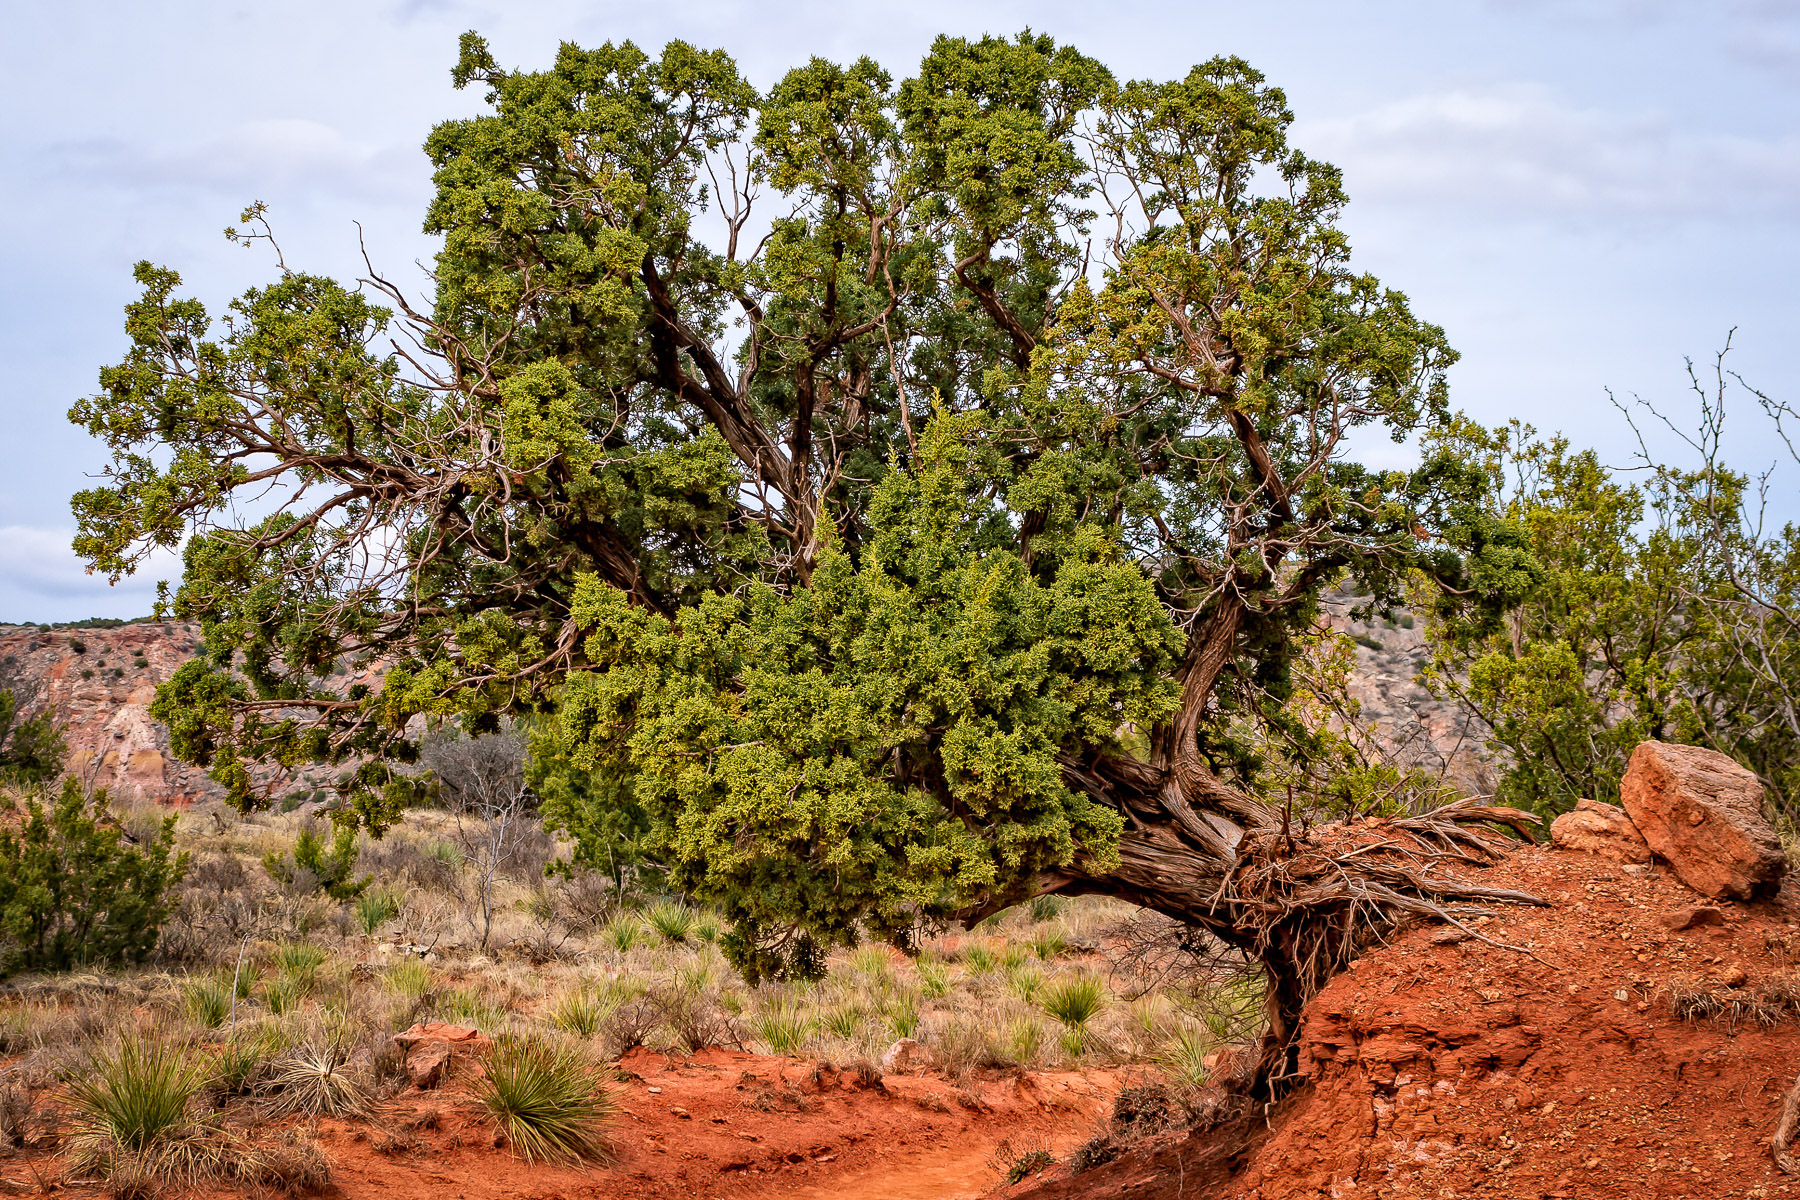 A tree grows out of the side of a berm at Texas' Palo Duro Canyon.